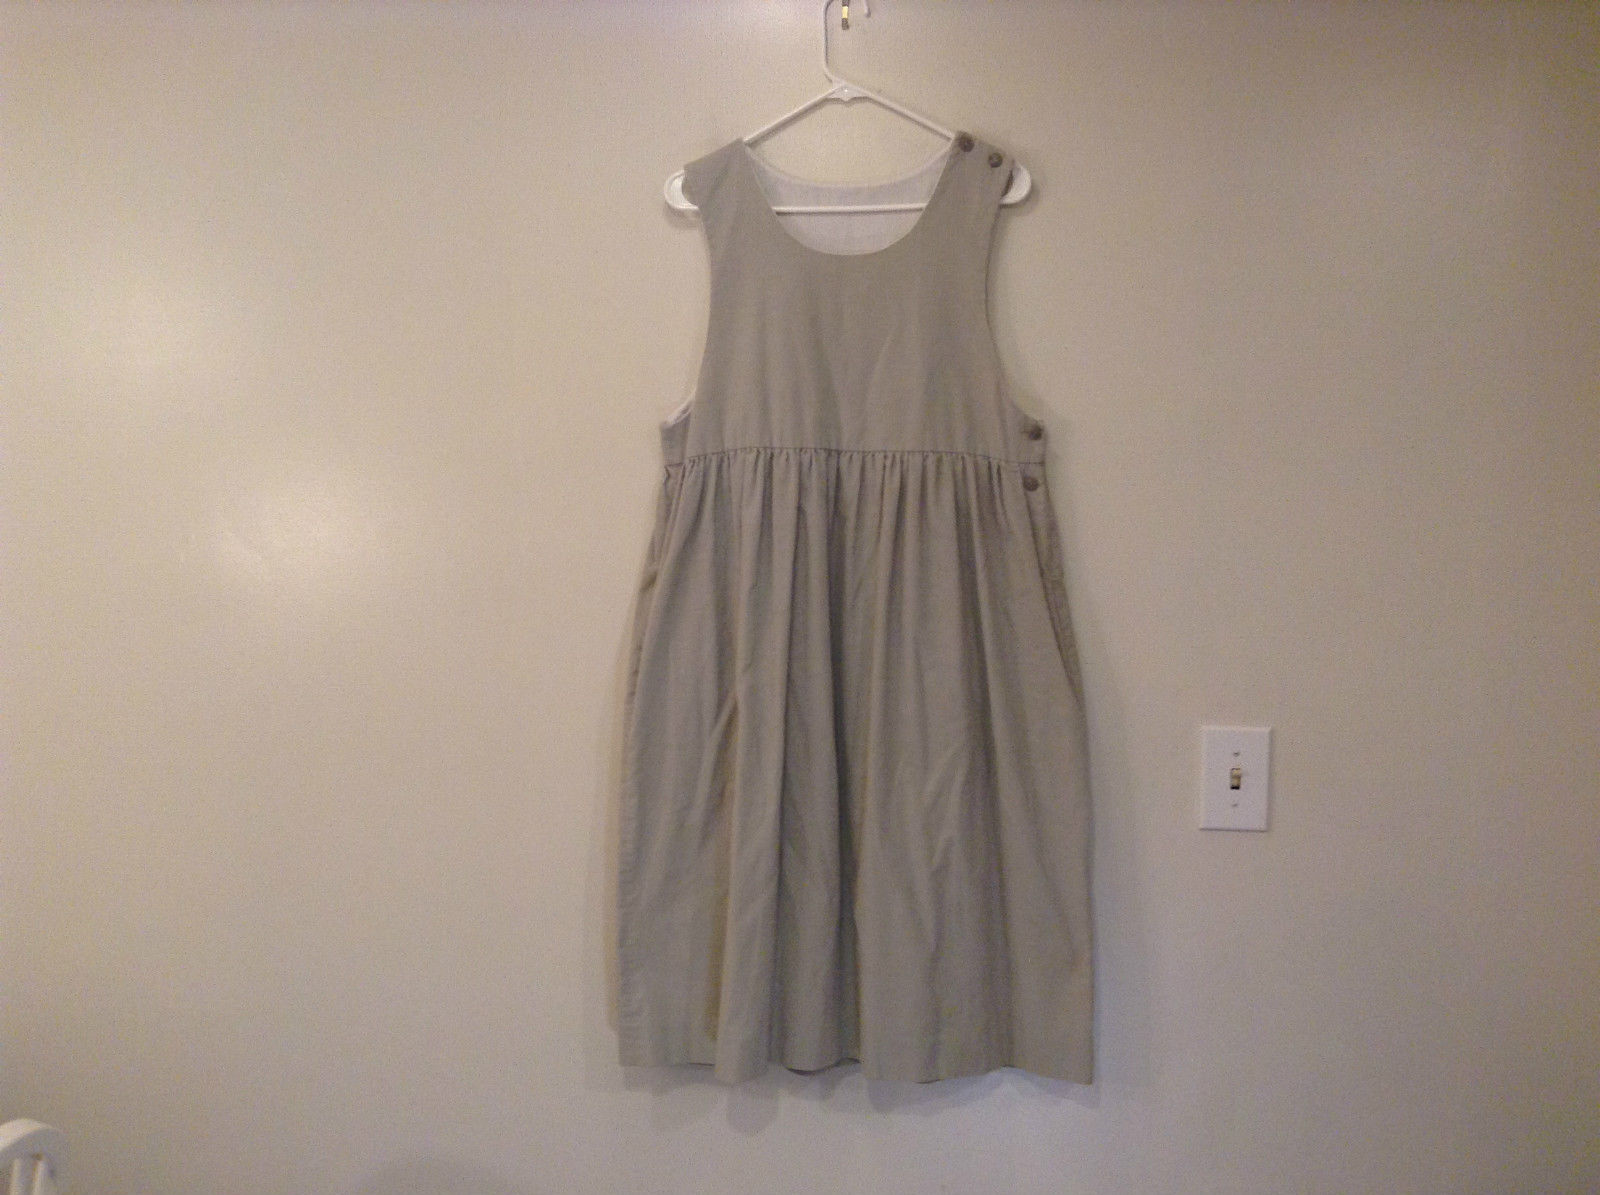 Handmade Sleeveless Dress 100 Percent Cotton Light Gray Measurements Below